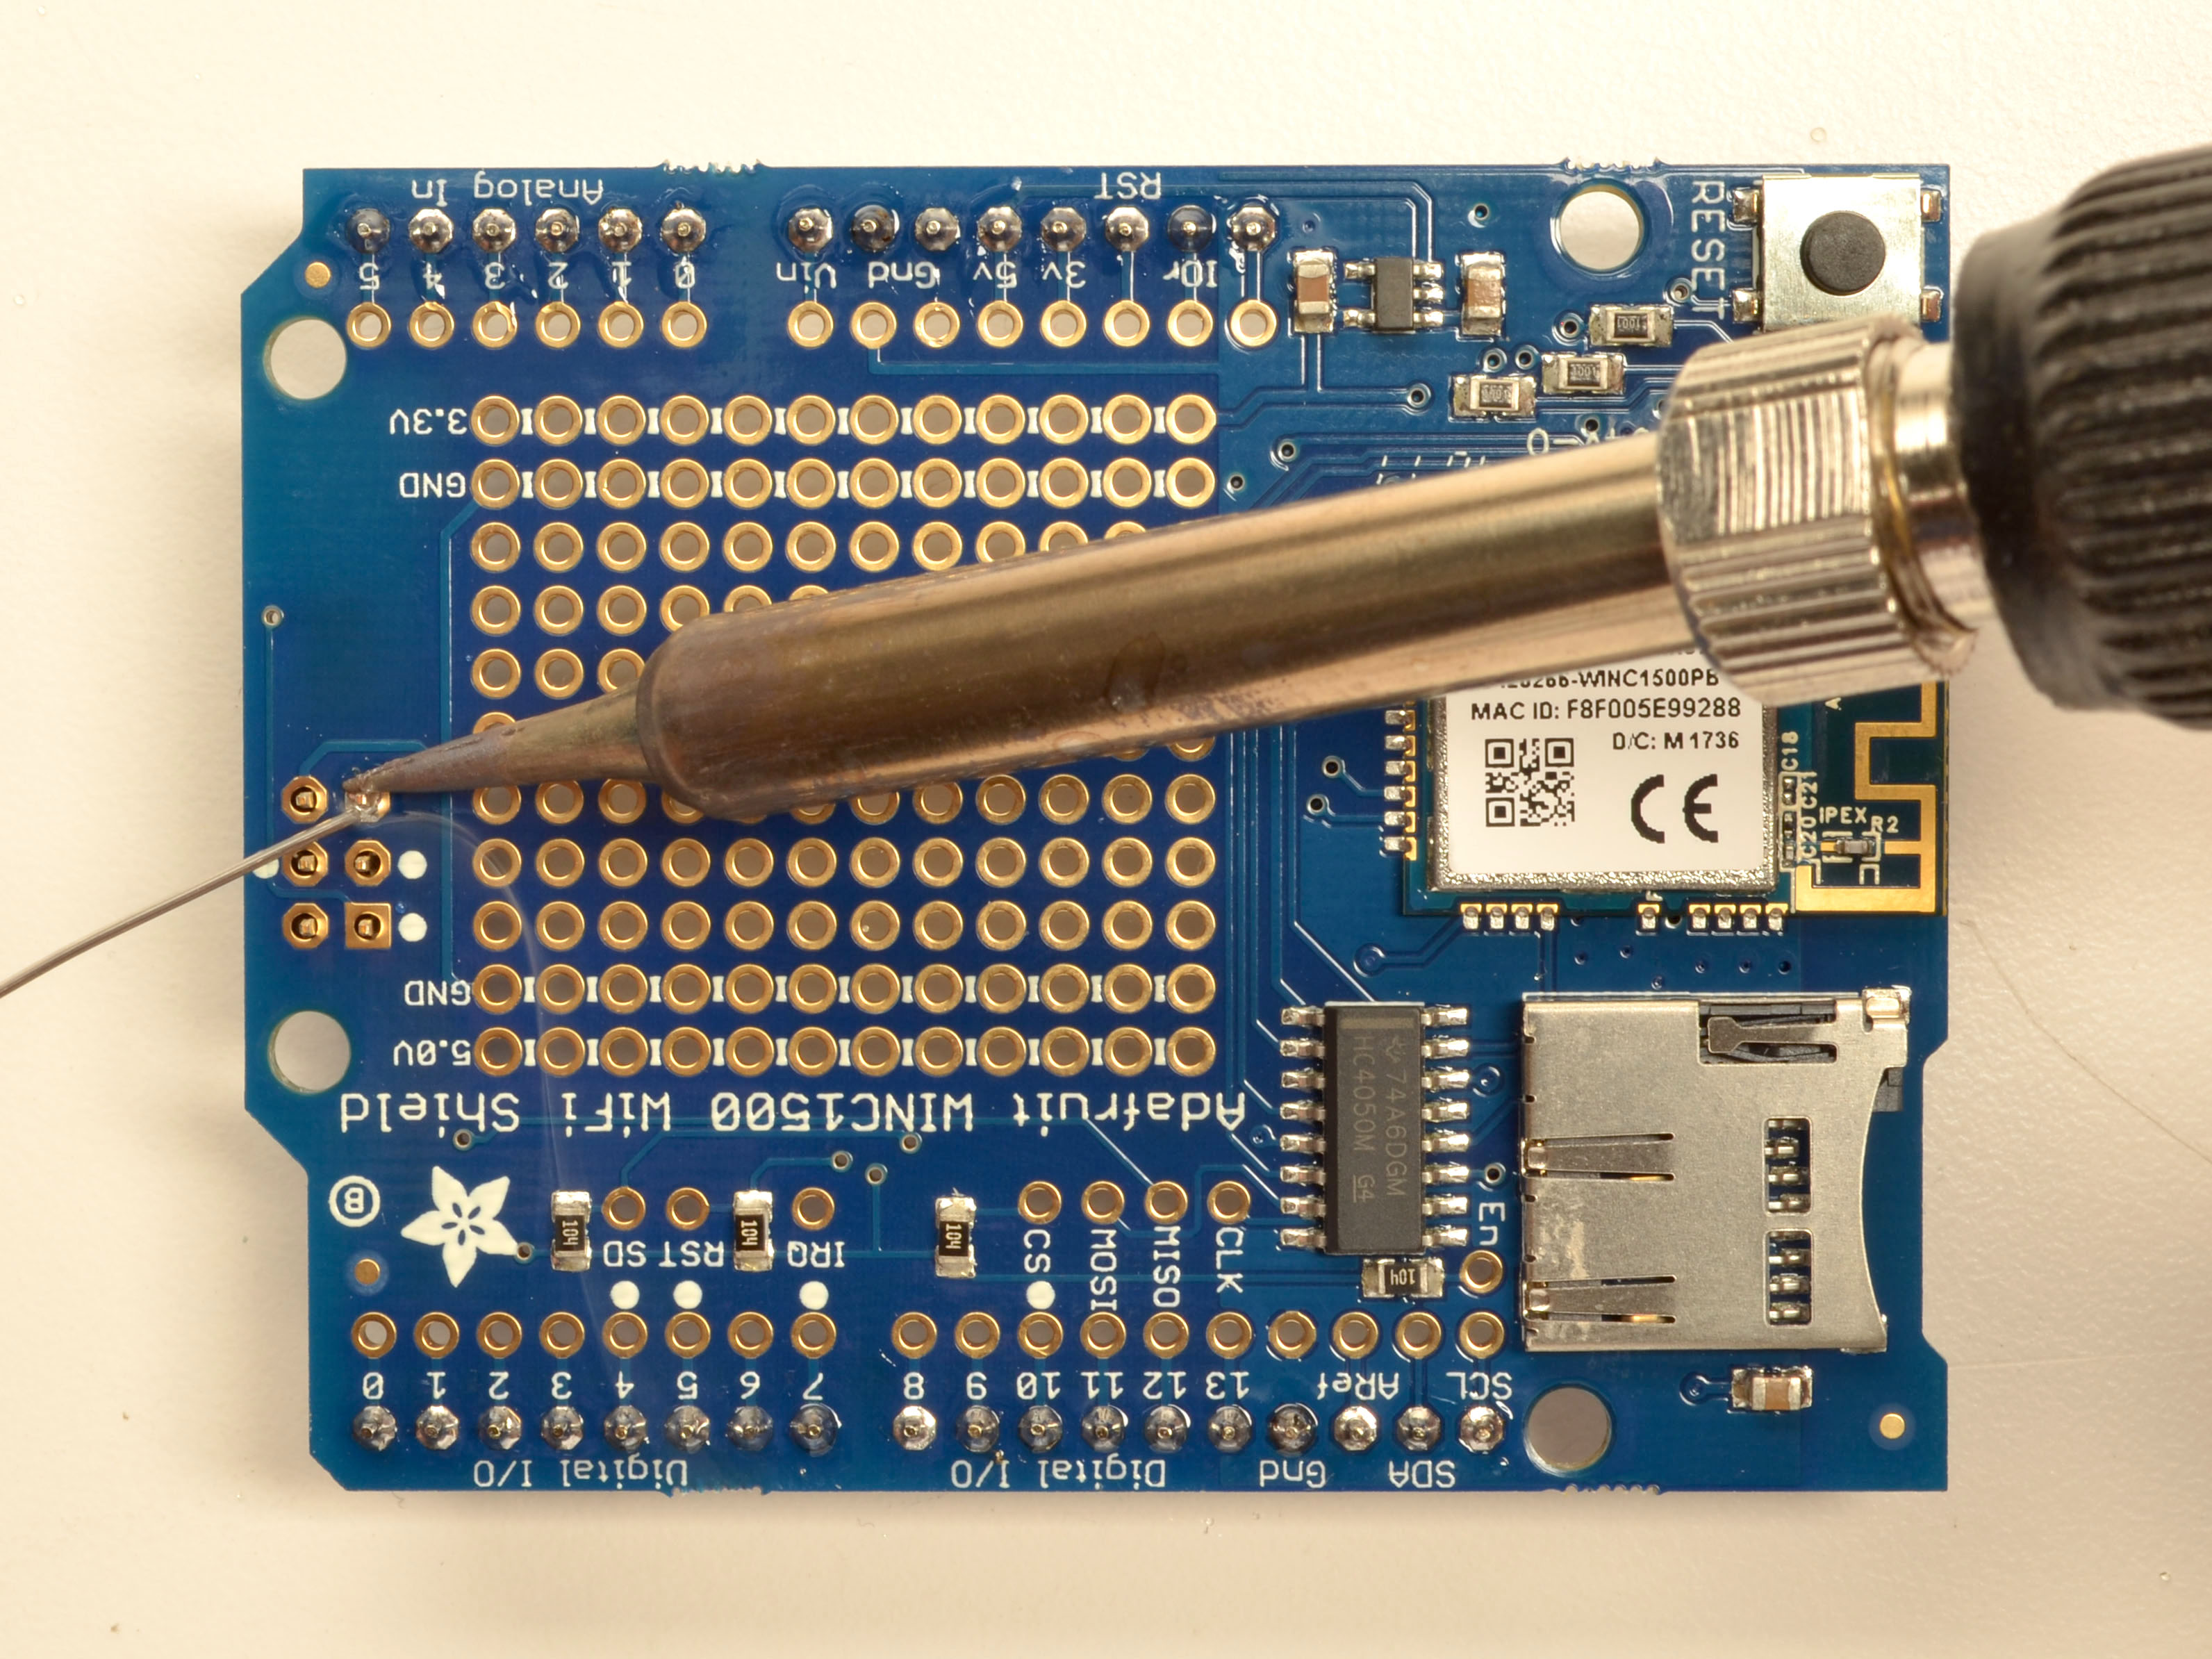 adafruit_products_DSC_3879.jpg